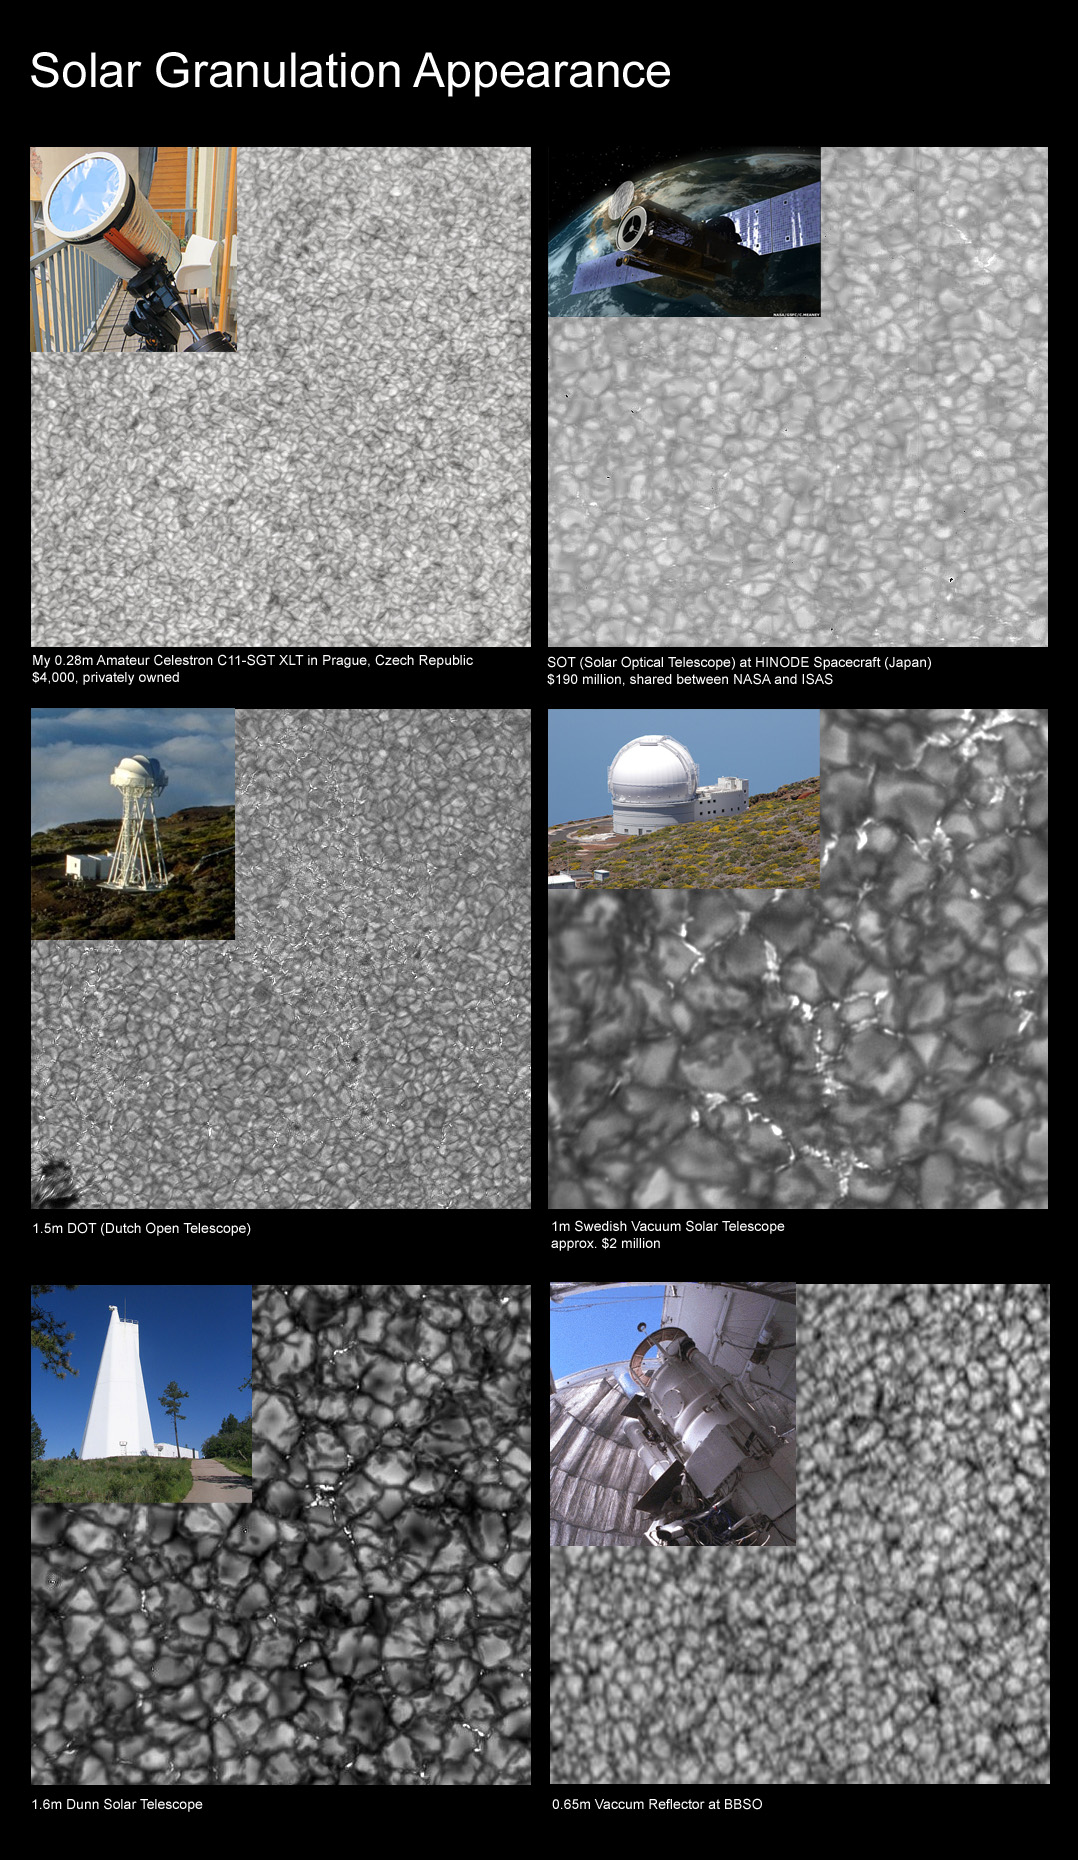 Comparison of typical images obtained on various solar telescopes